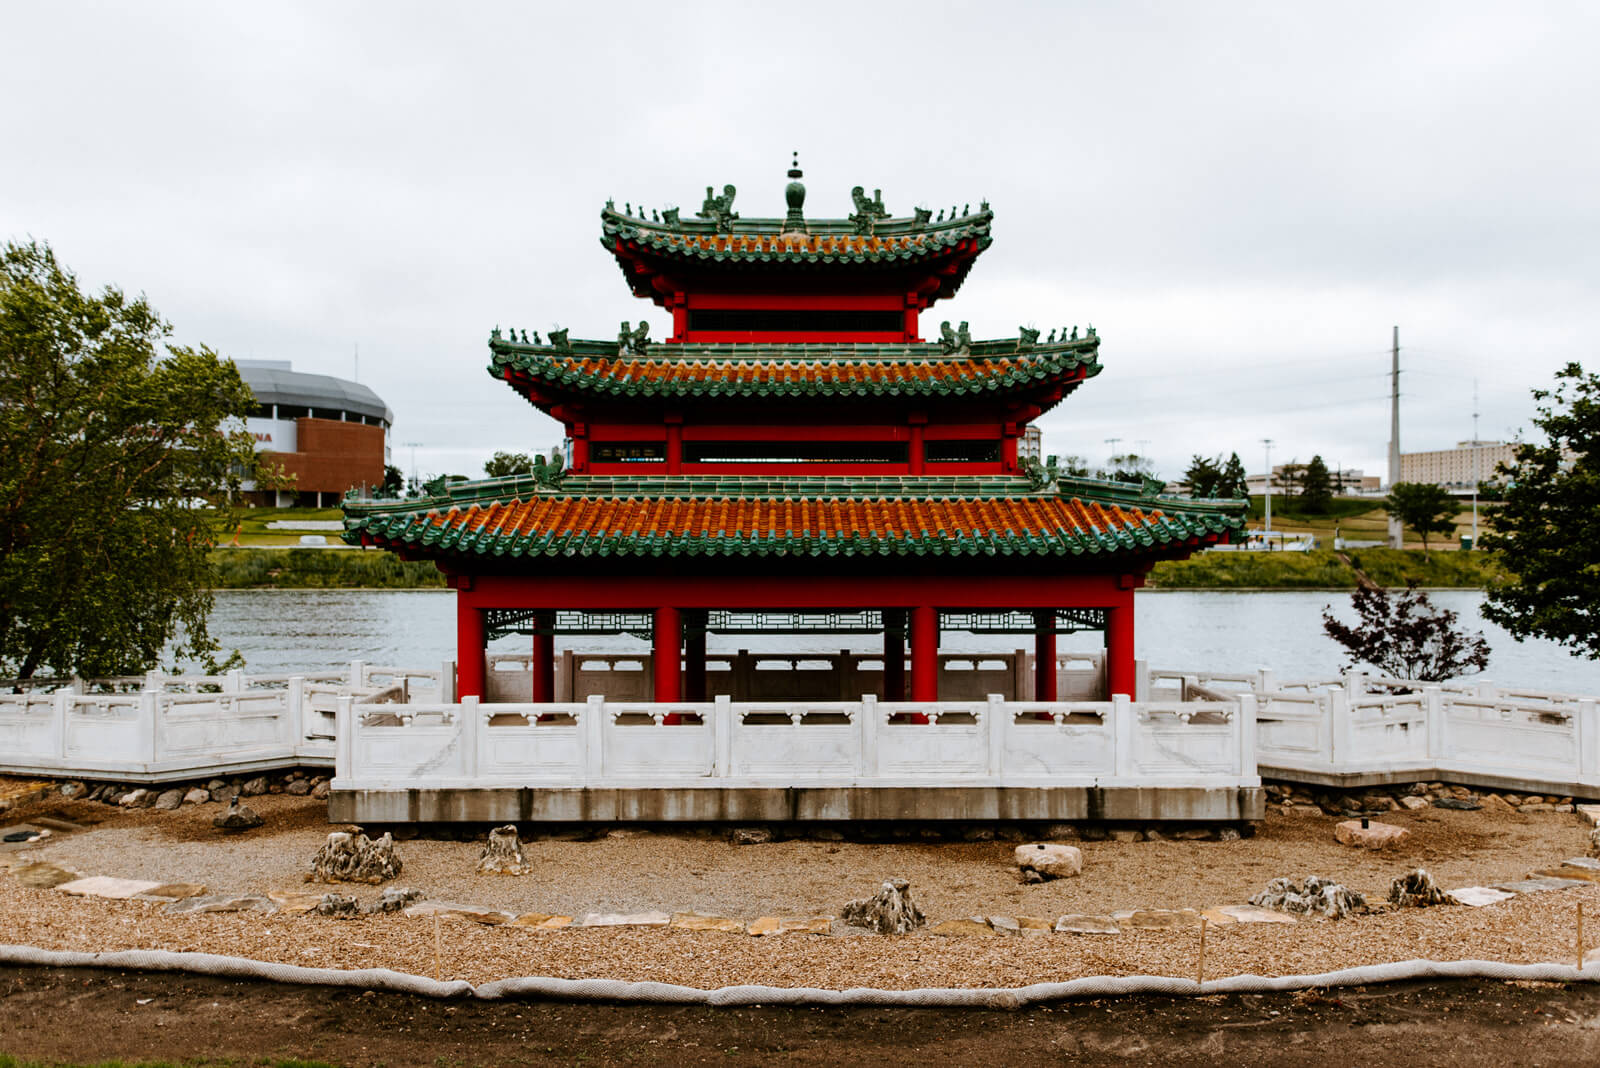 Red Asian pavilion in front of a river.